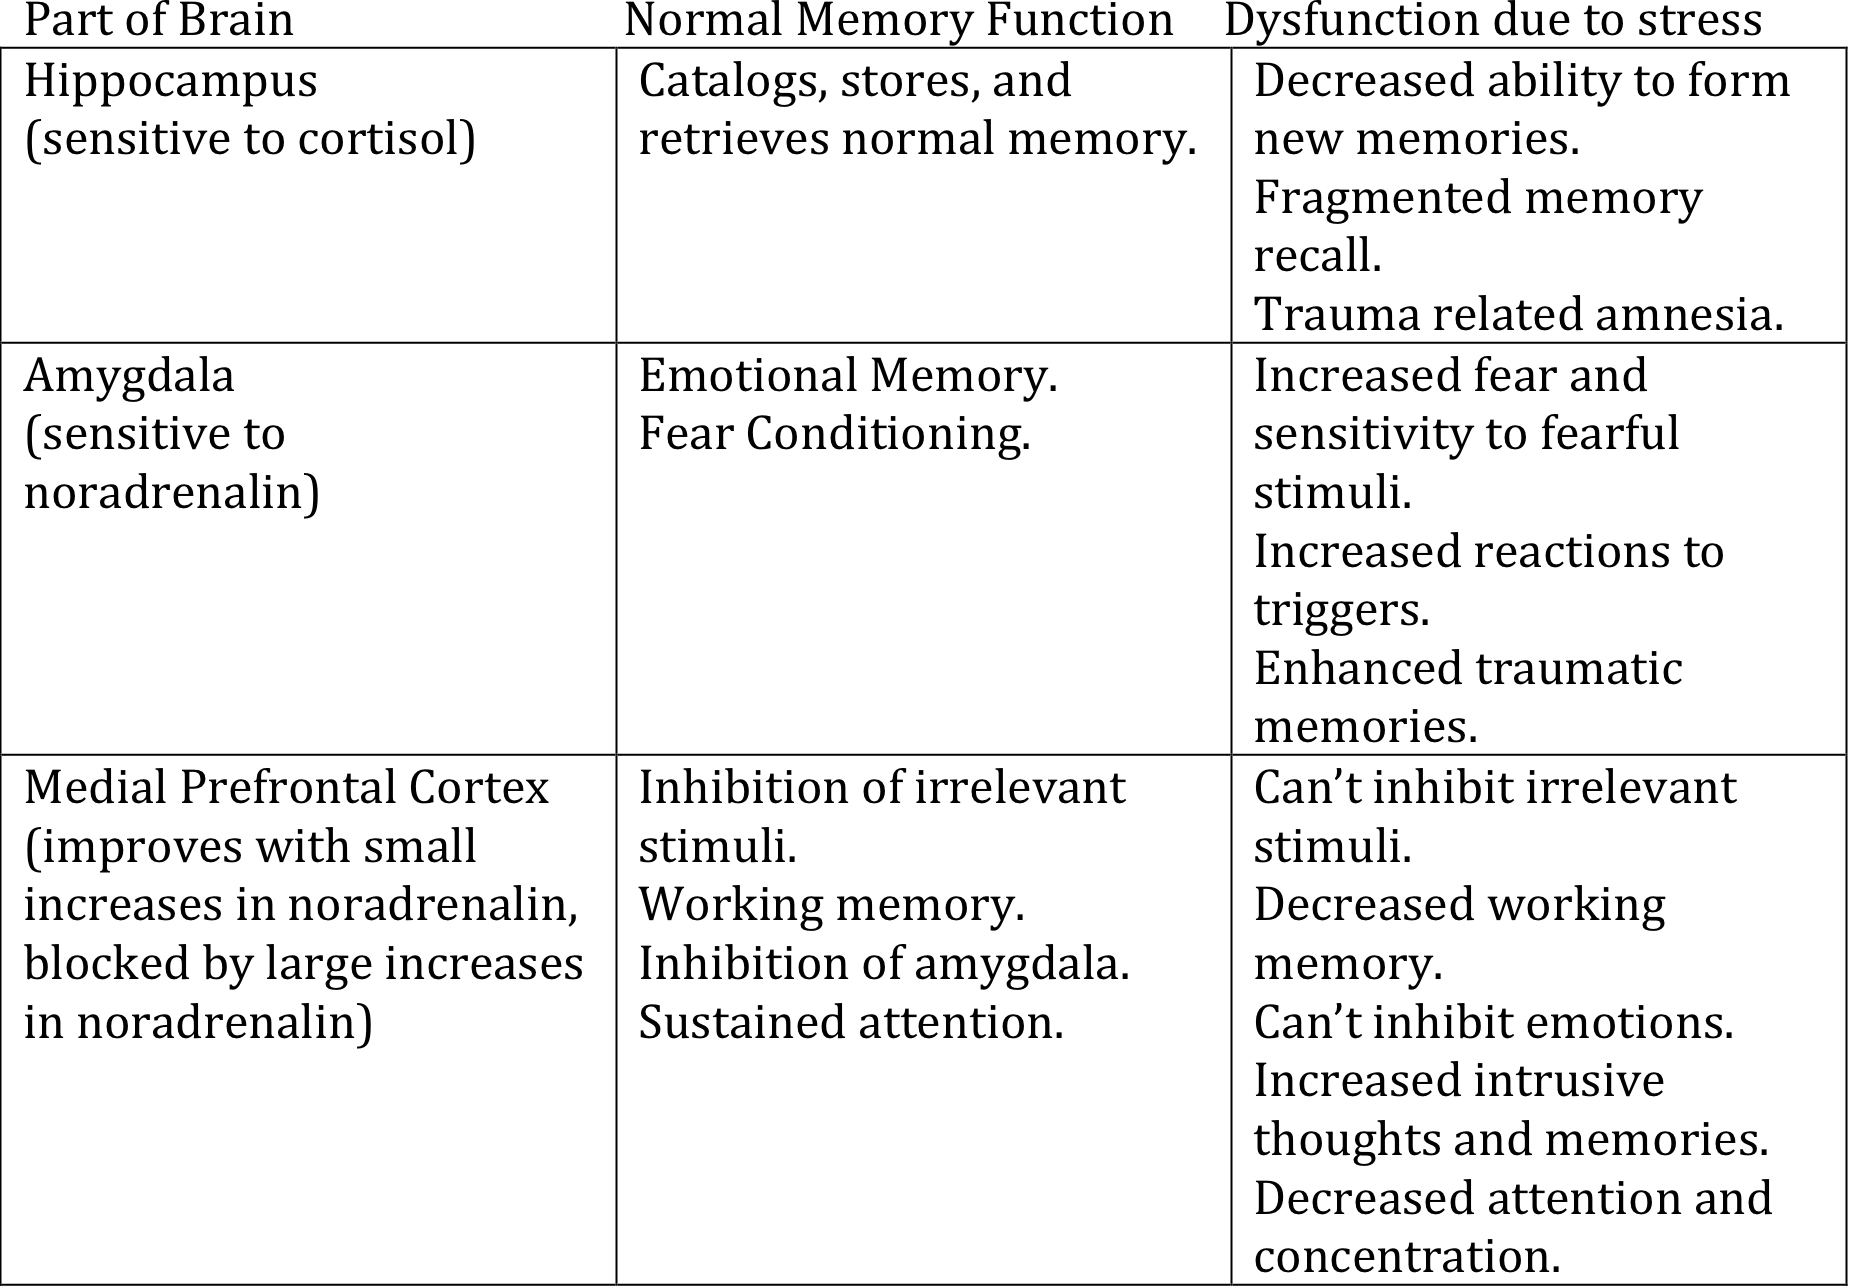 Effects of Stress Chemicals on Memory